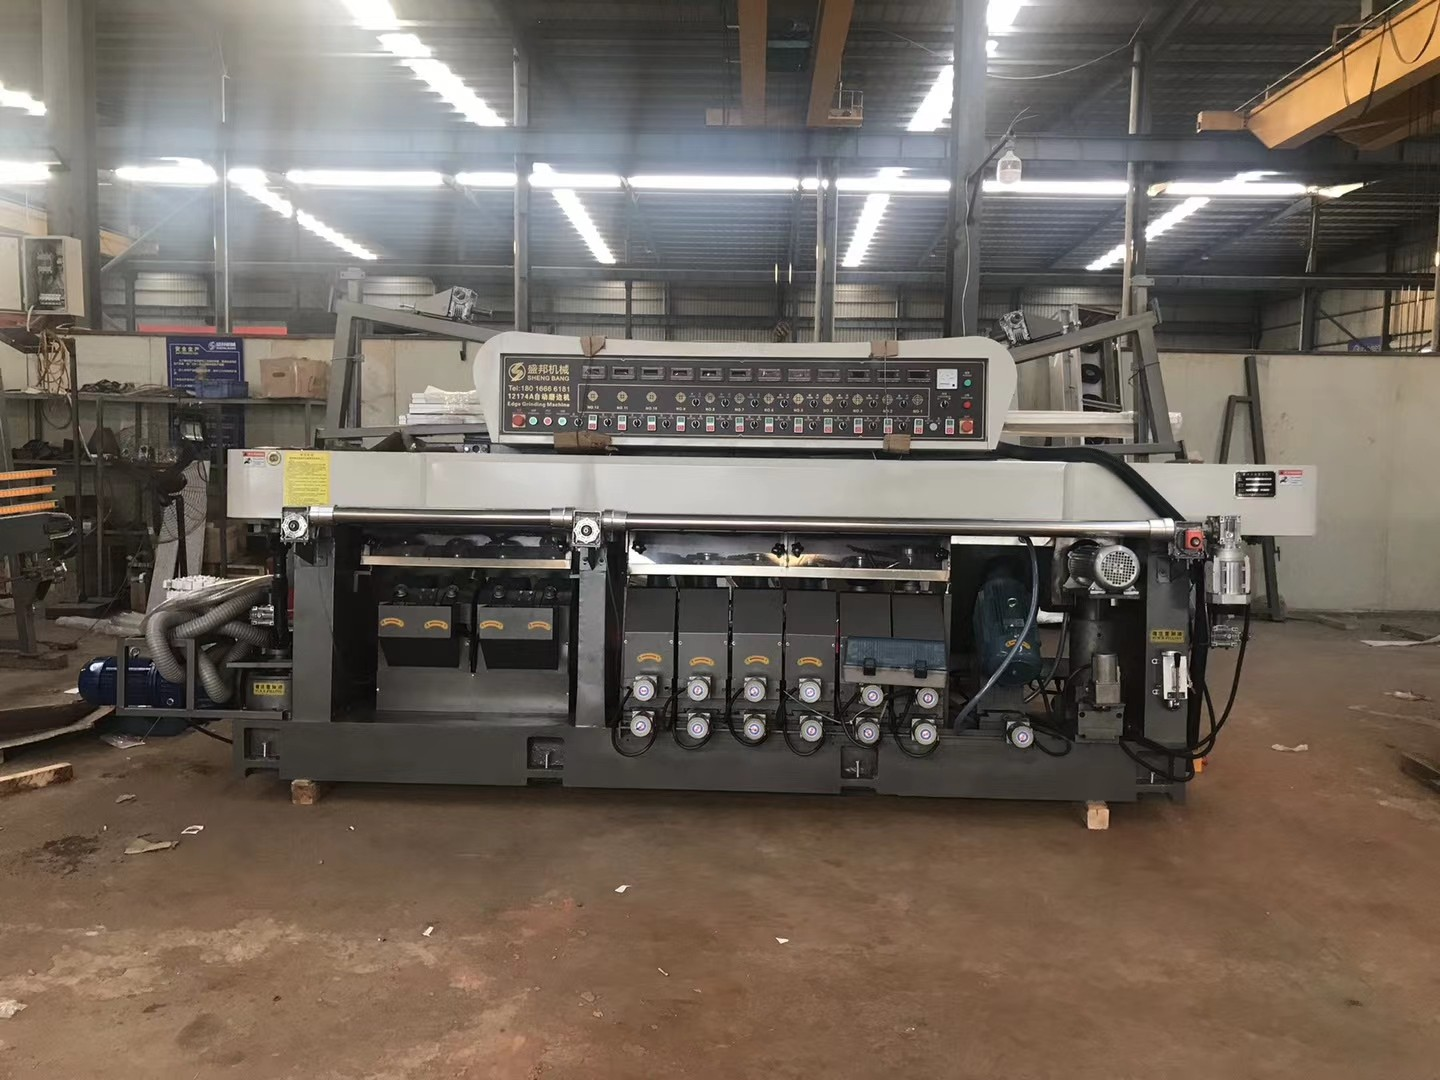 11heads Automatic straight line edge chamfering and thicknessing machine Manufacturers, 11heads Automatic straight line edge chamfering and thicknessing machine Factory, Supply 11heads Automatic straight line edge chamfering and thicknessing machine